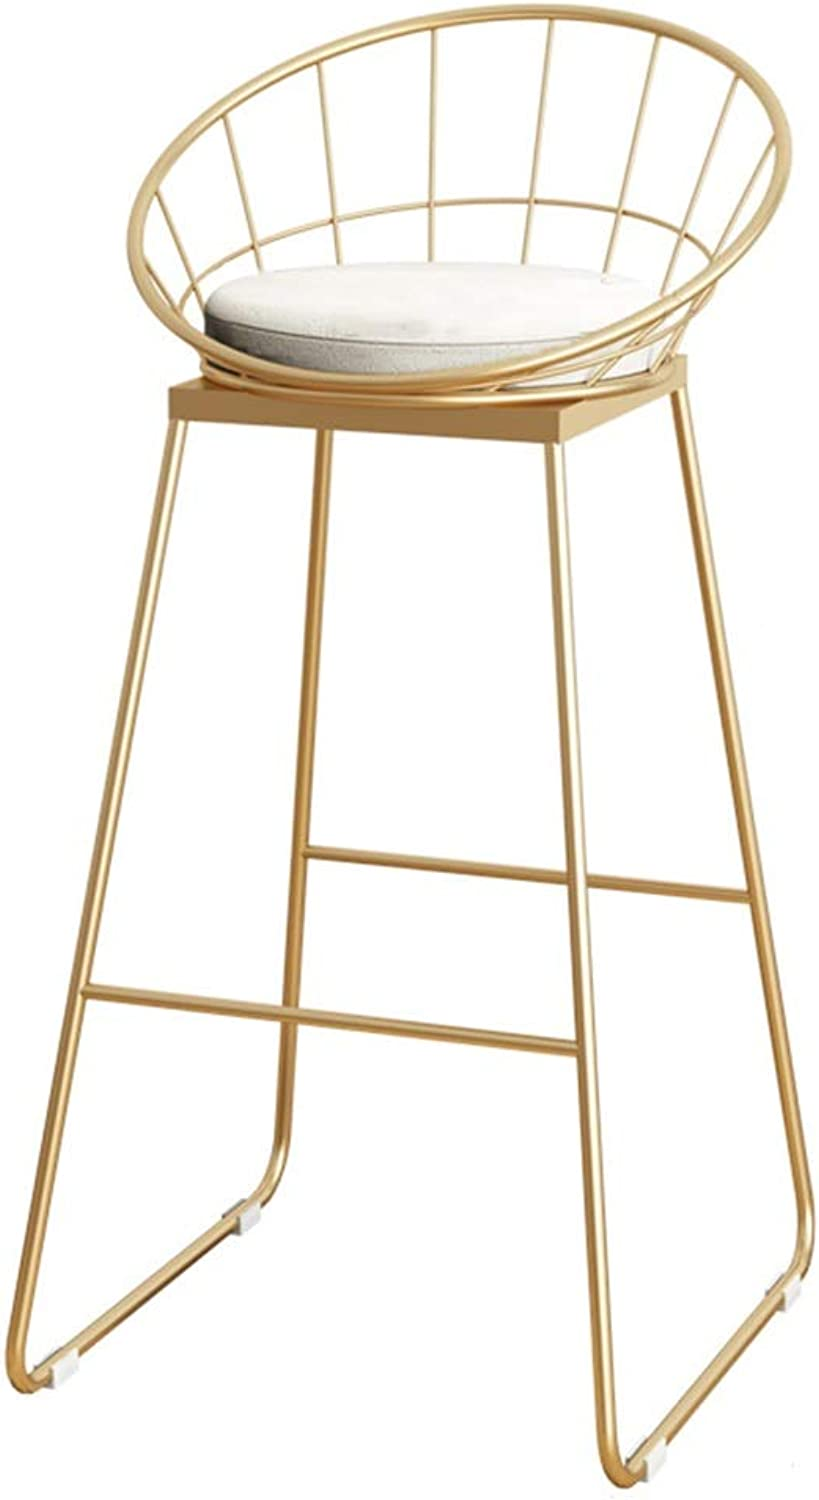 Barstools Chair Bar Stool High Stool Breakfast Chair and Cushion Seat Back Comfort Kitchen Breakfast Counter Greenhouse Bearing 150 Kg gold (Size   42x44x75cm)